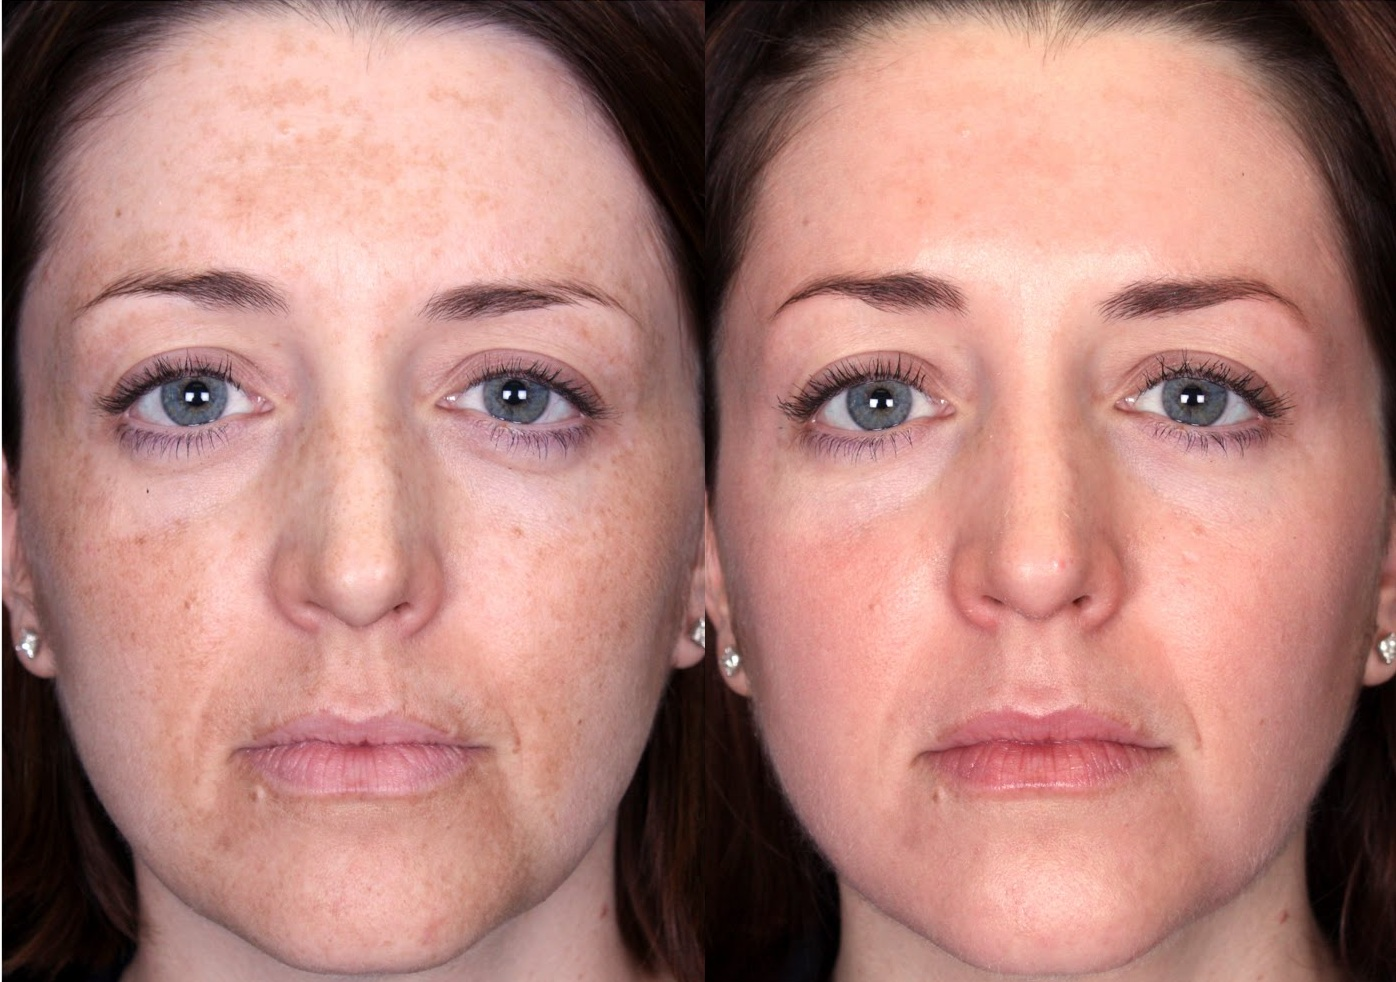 skin discoloration on face